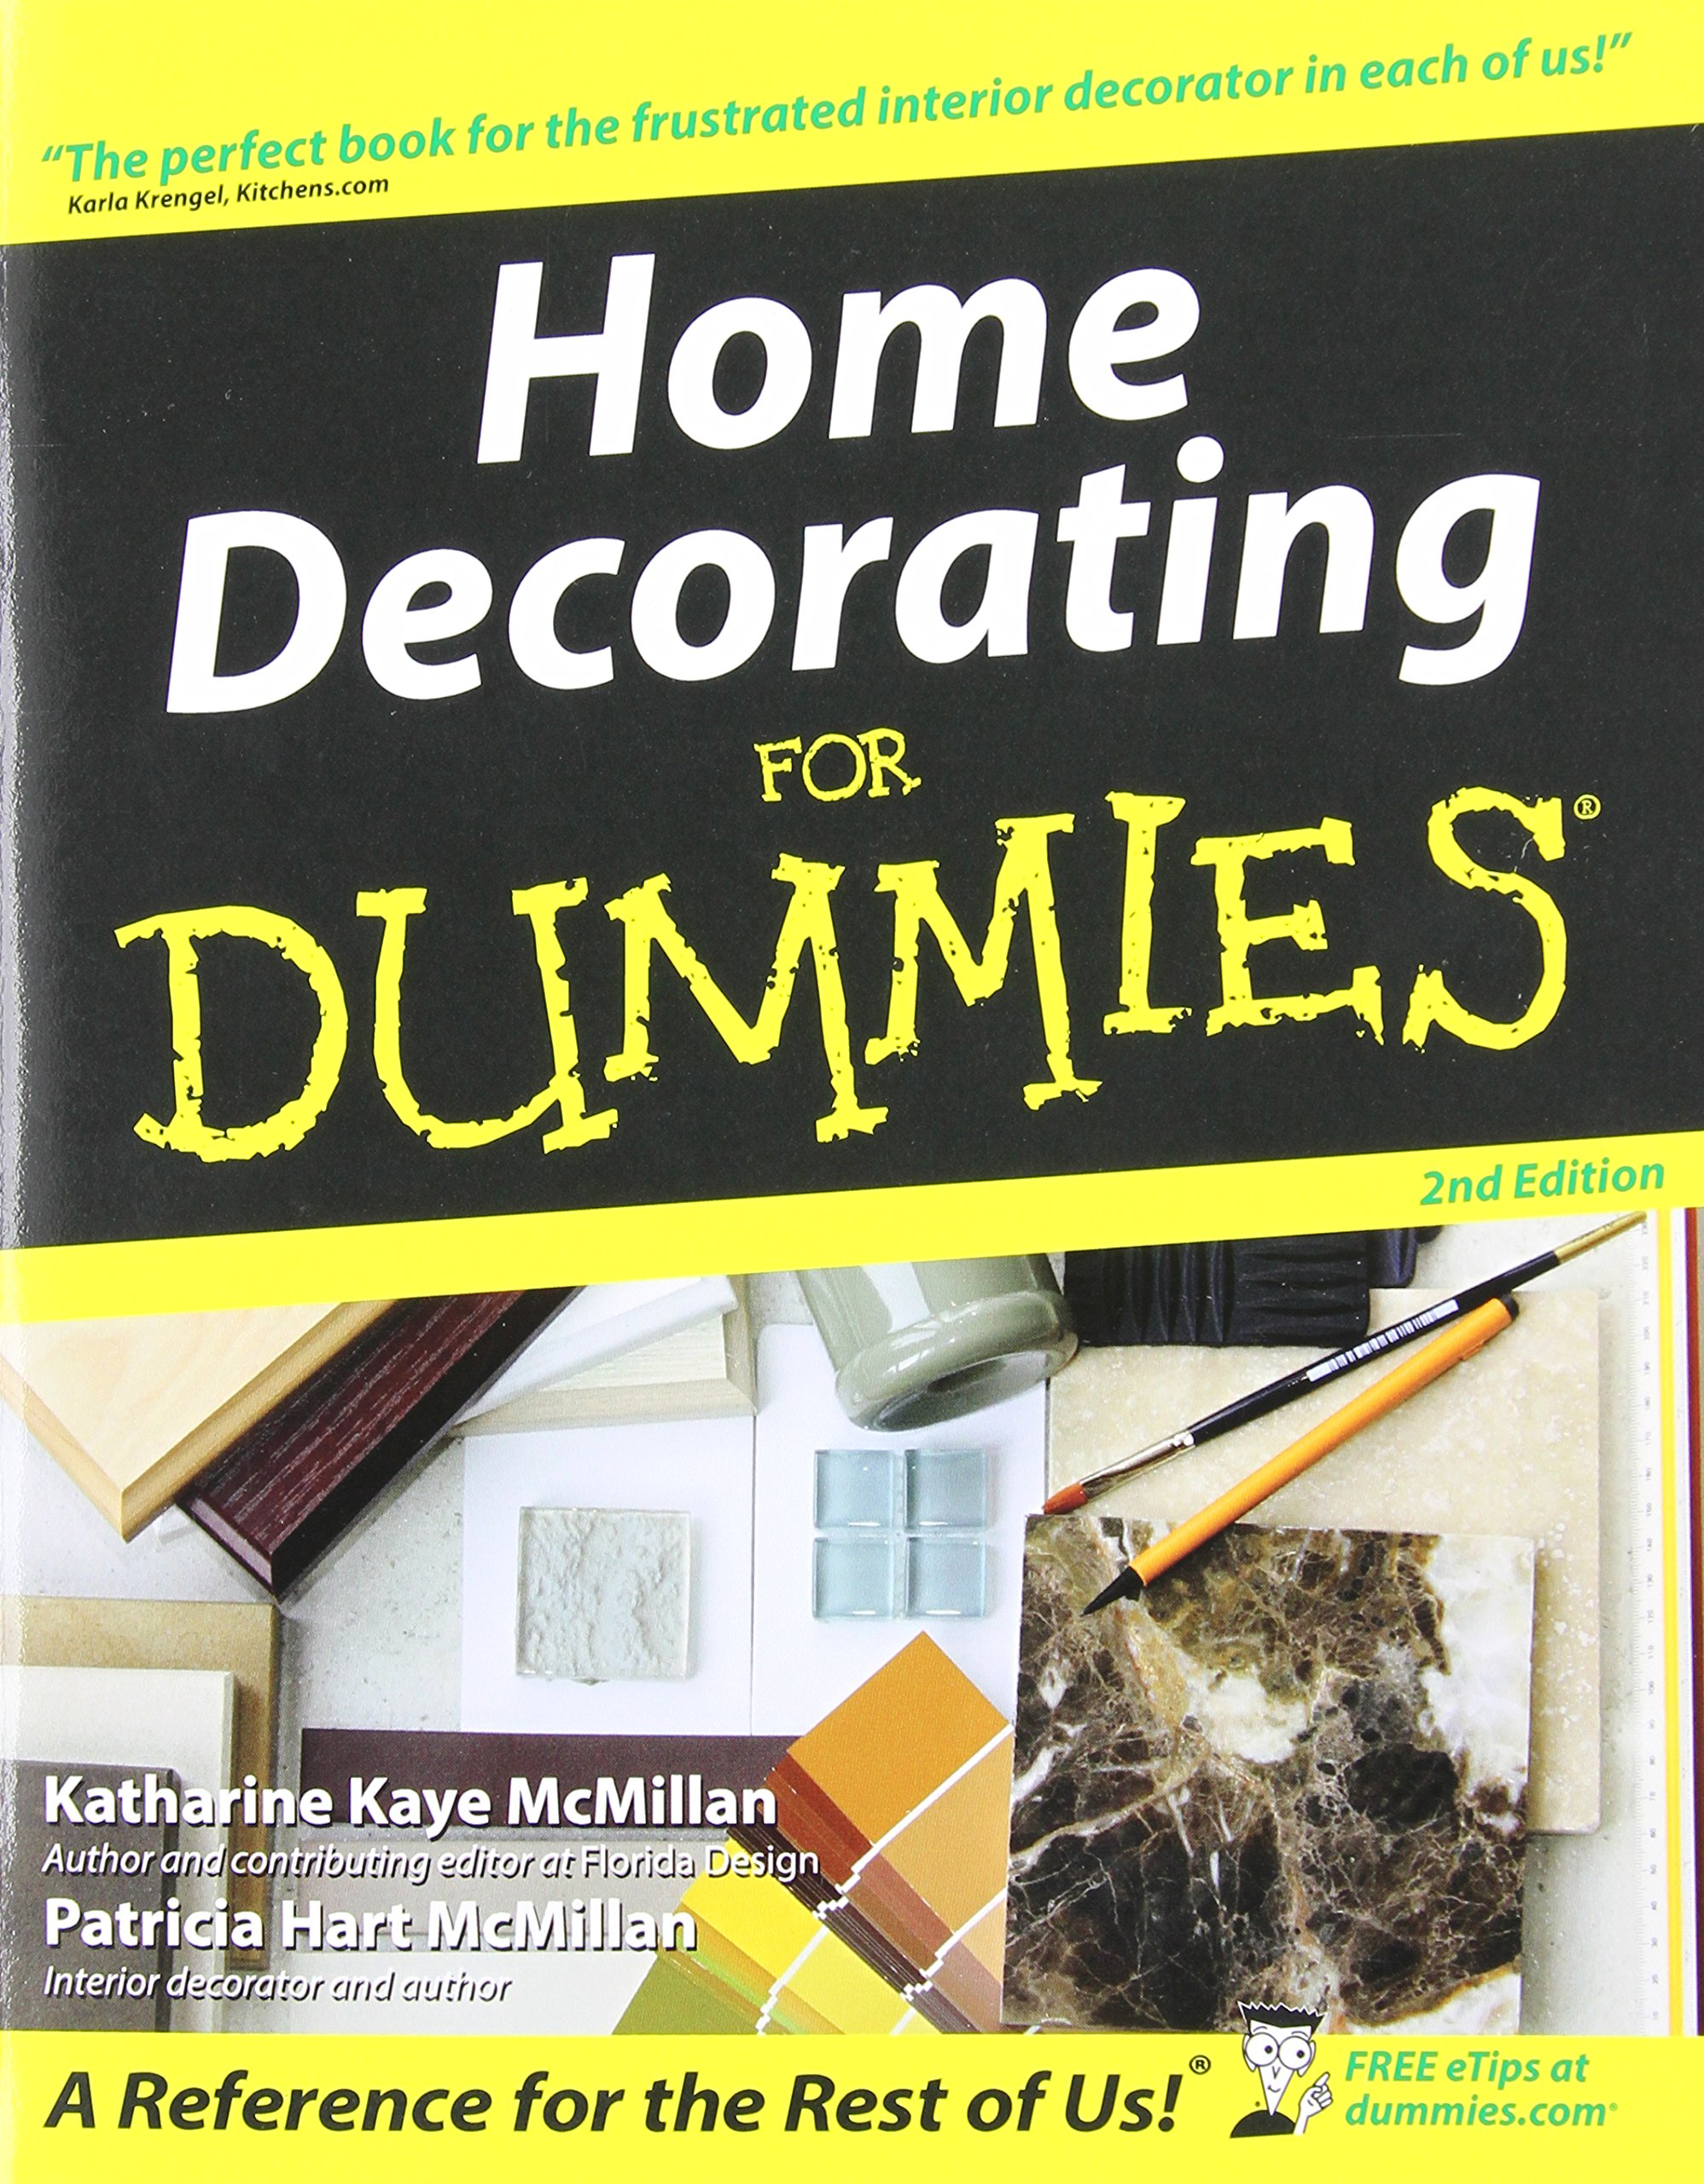 Home Decorating For Dummies Katharine Kaye McMillan Patricia Hart